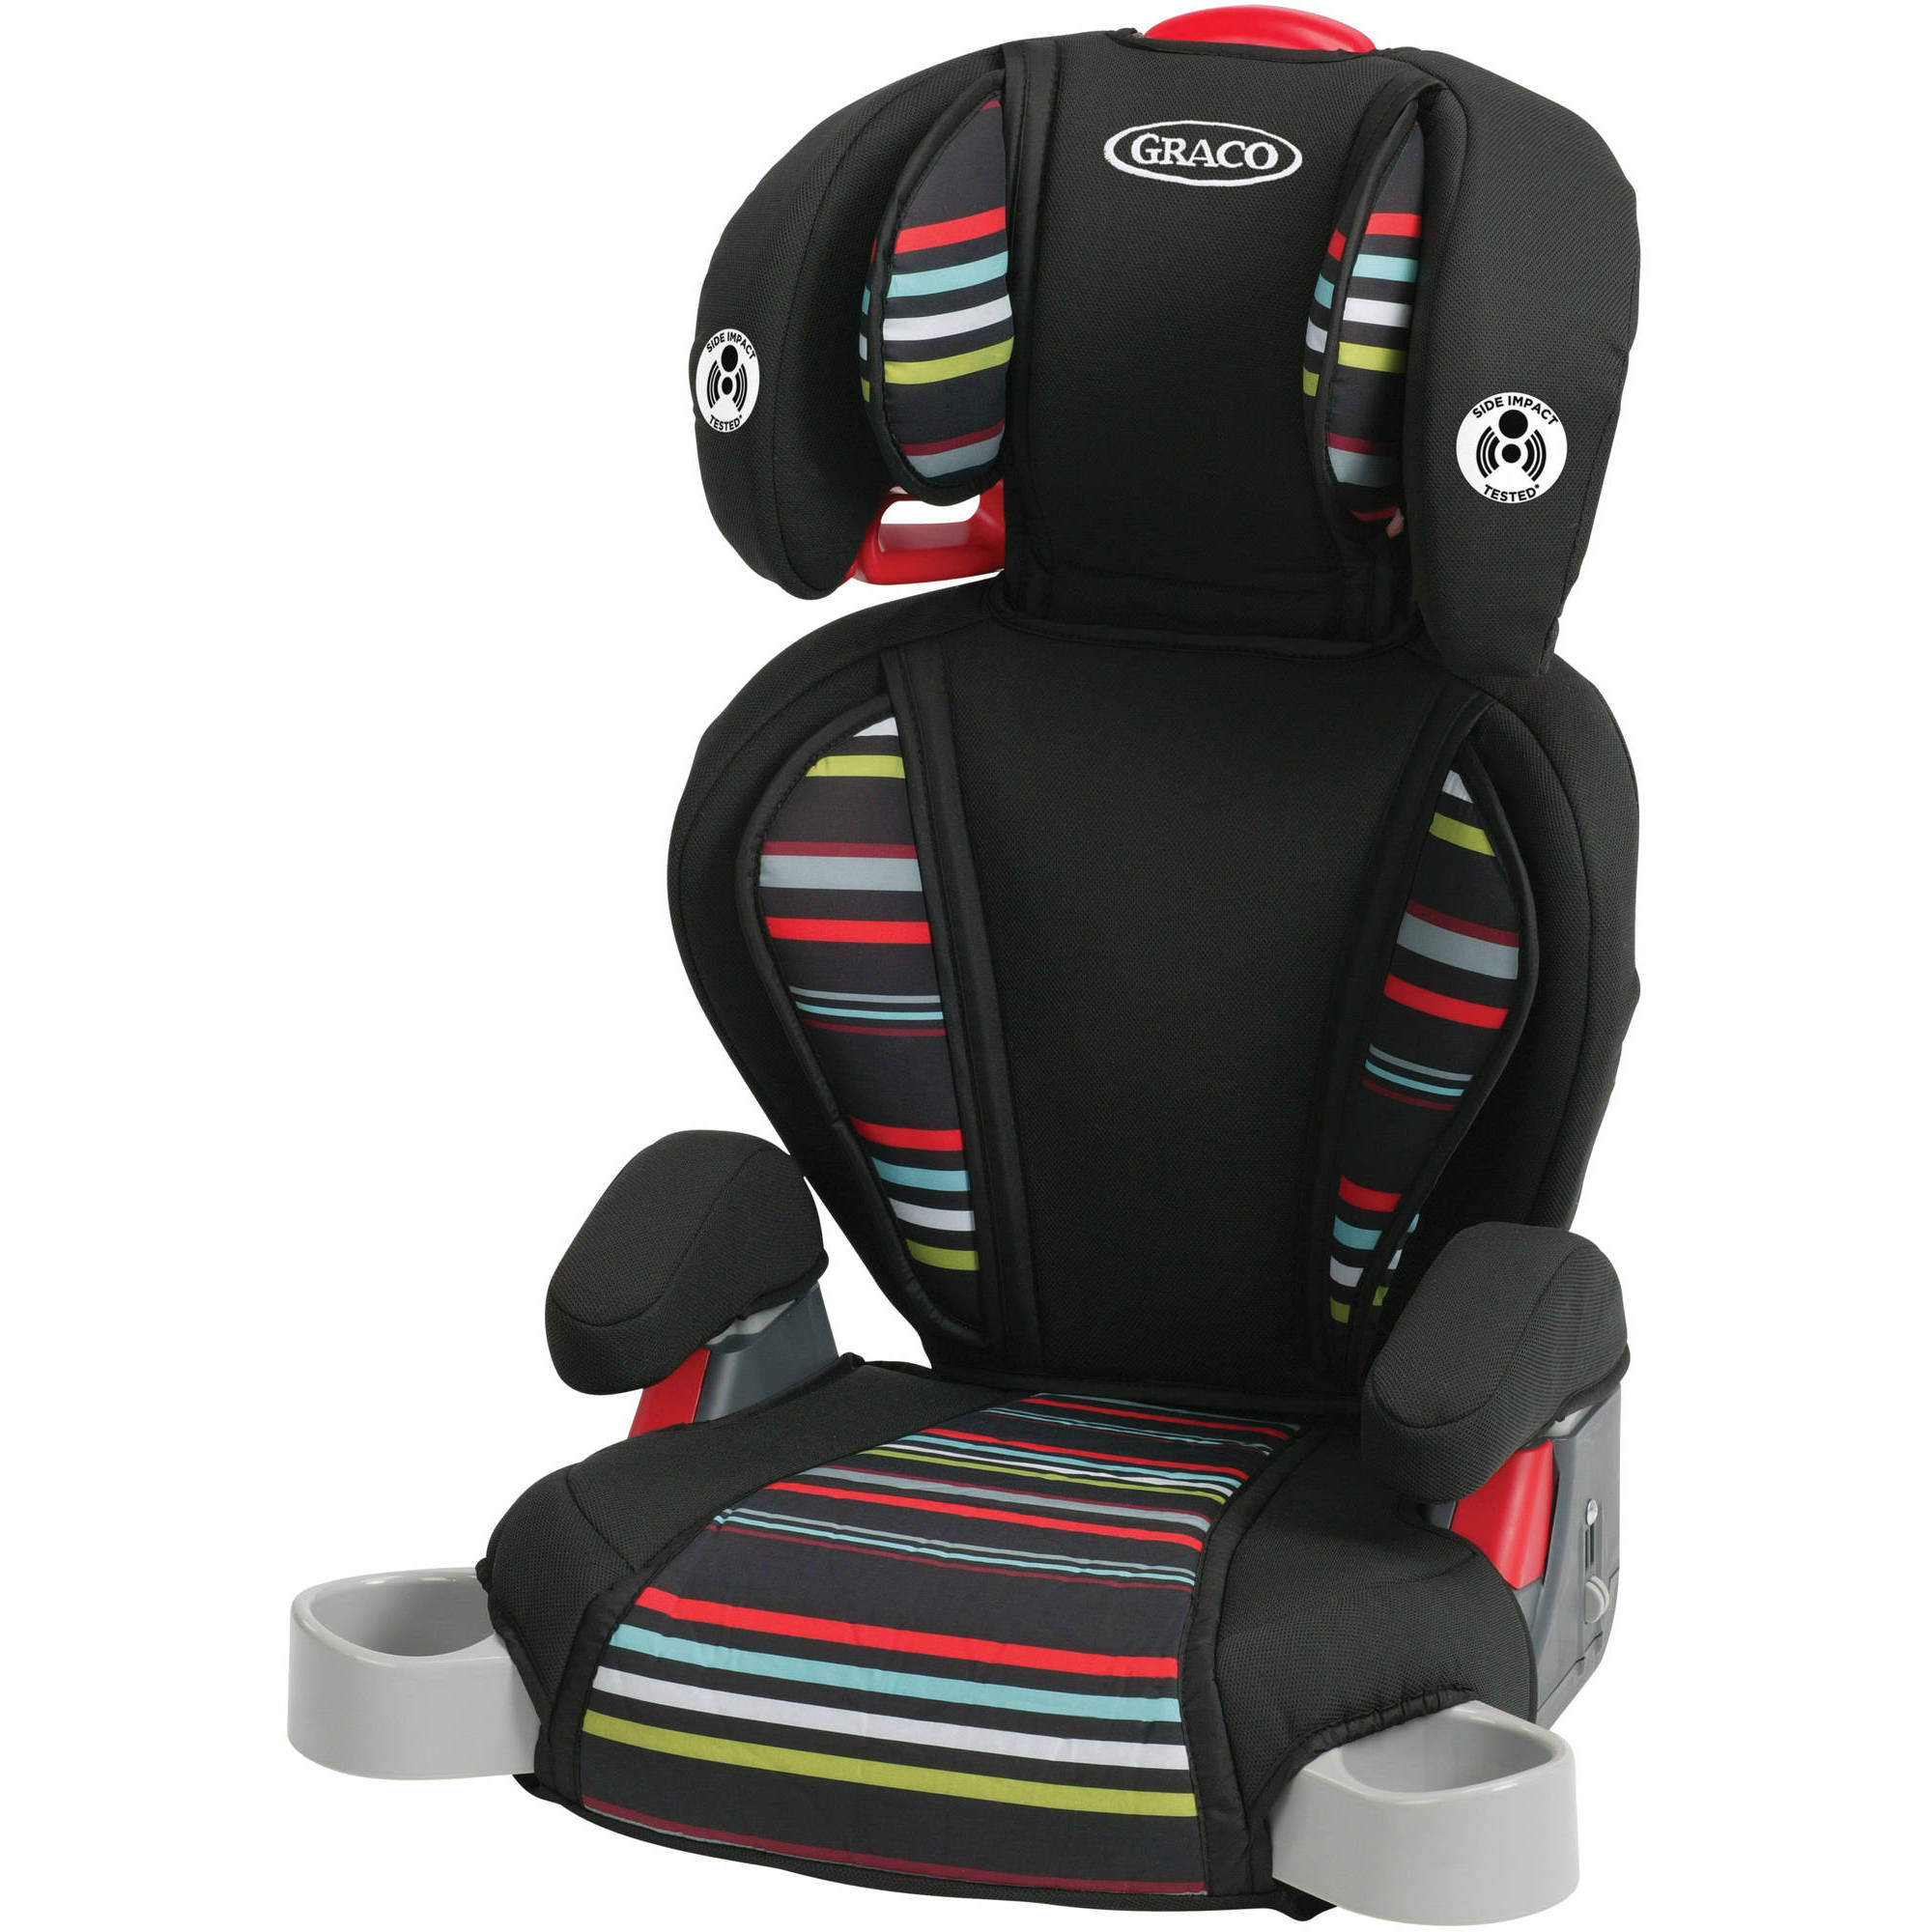 Graco Highback TurboBooster Booster Car Seat, Landmark